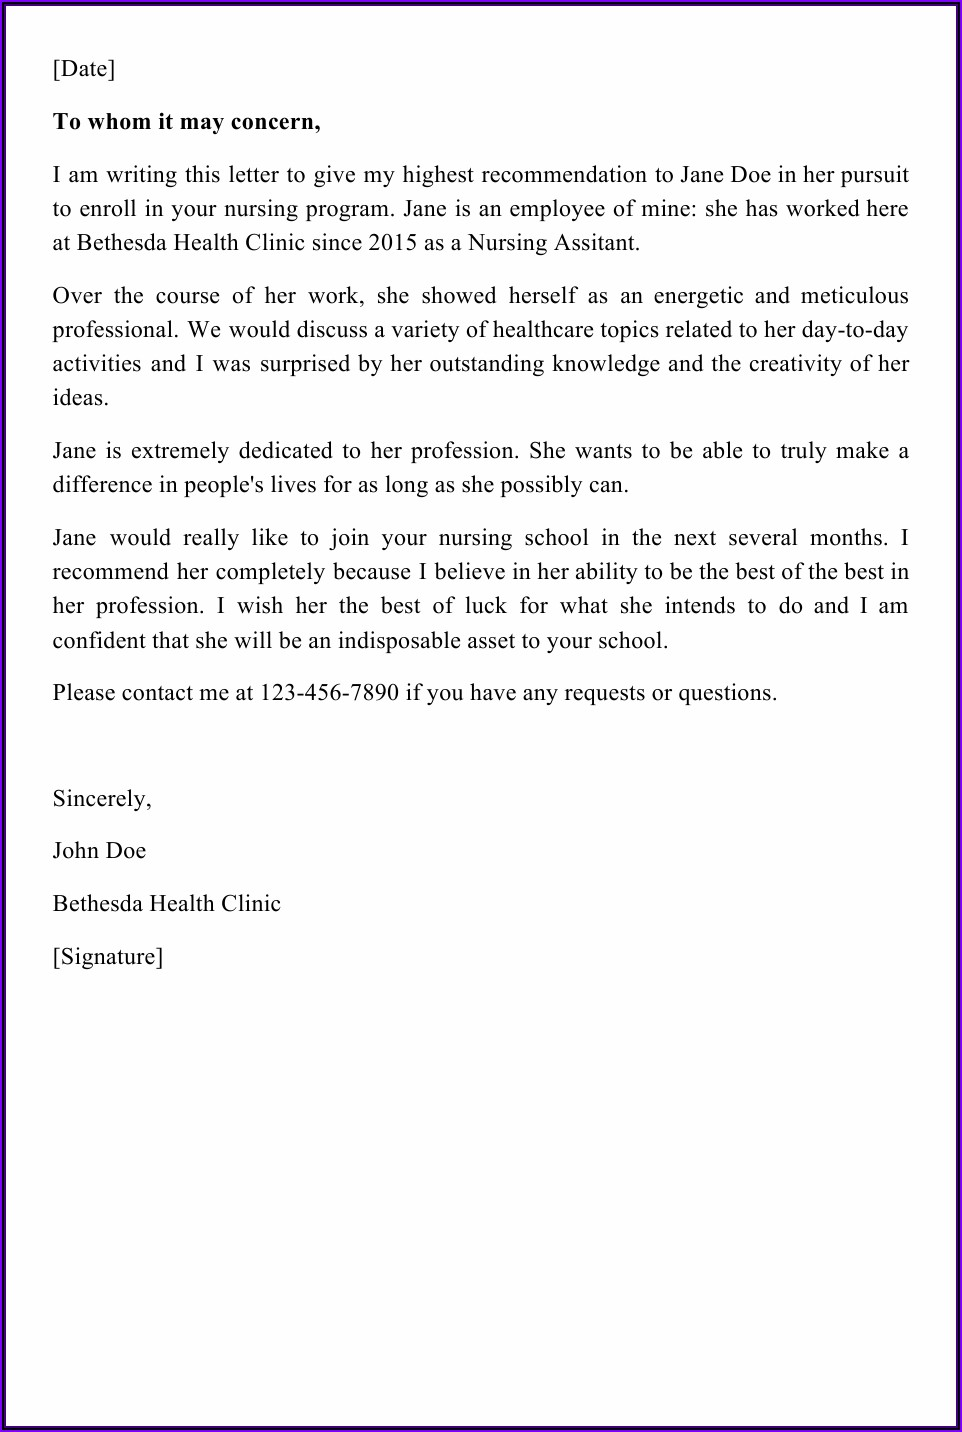 Letter Of Recommendation For Colleague Doctor